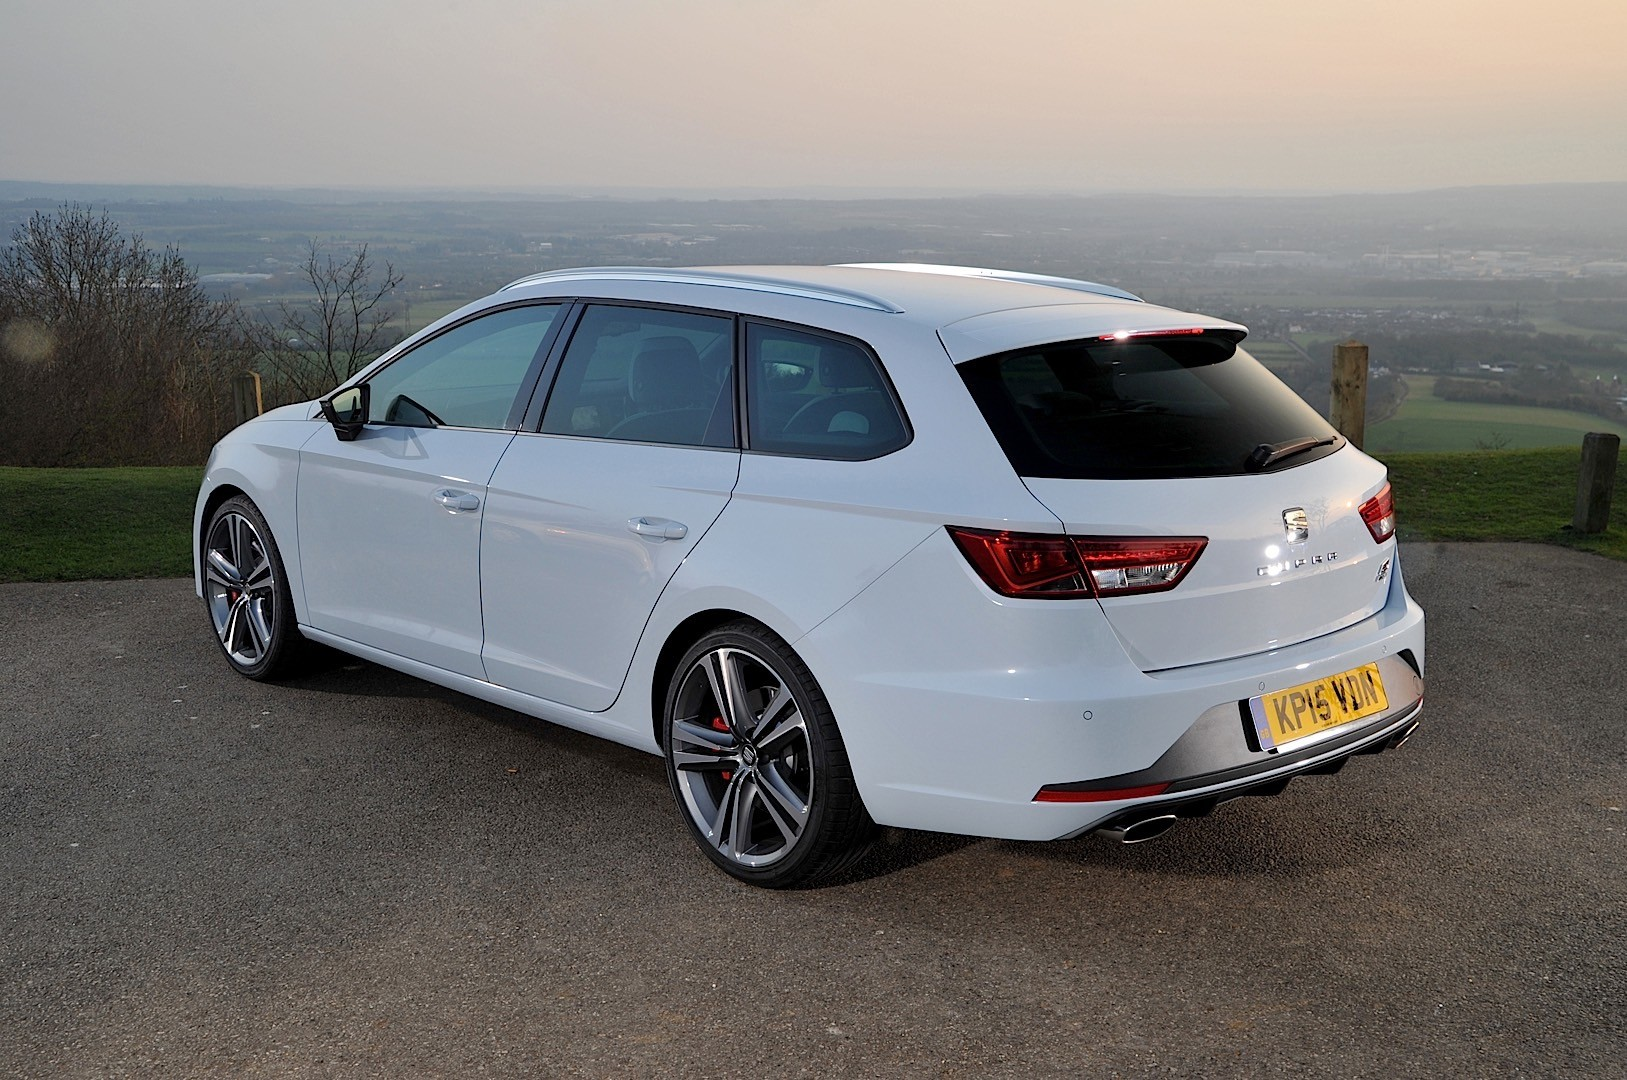 seat leon st cupra specs 2015 2016 2017 2018. Black Bedroom Furniture Sets. Home Design Ideas